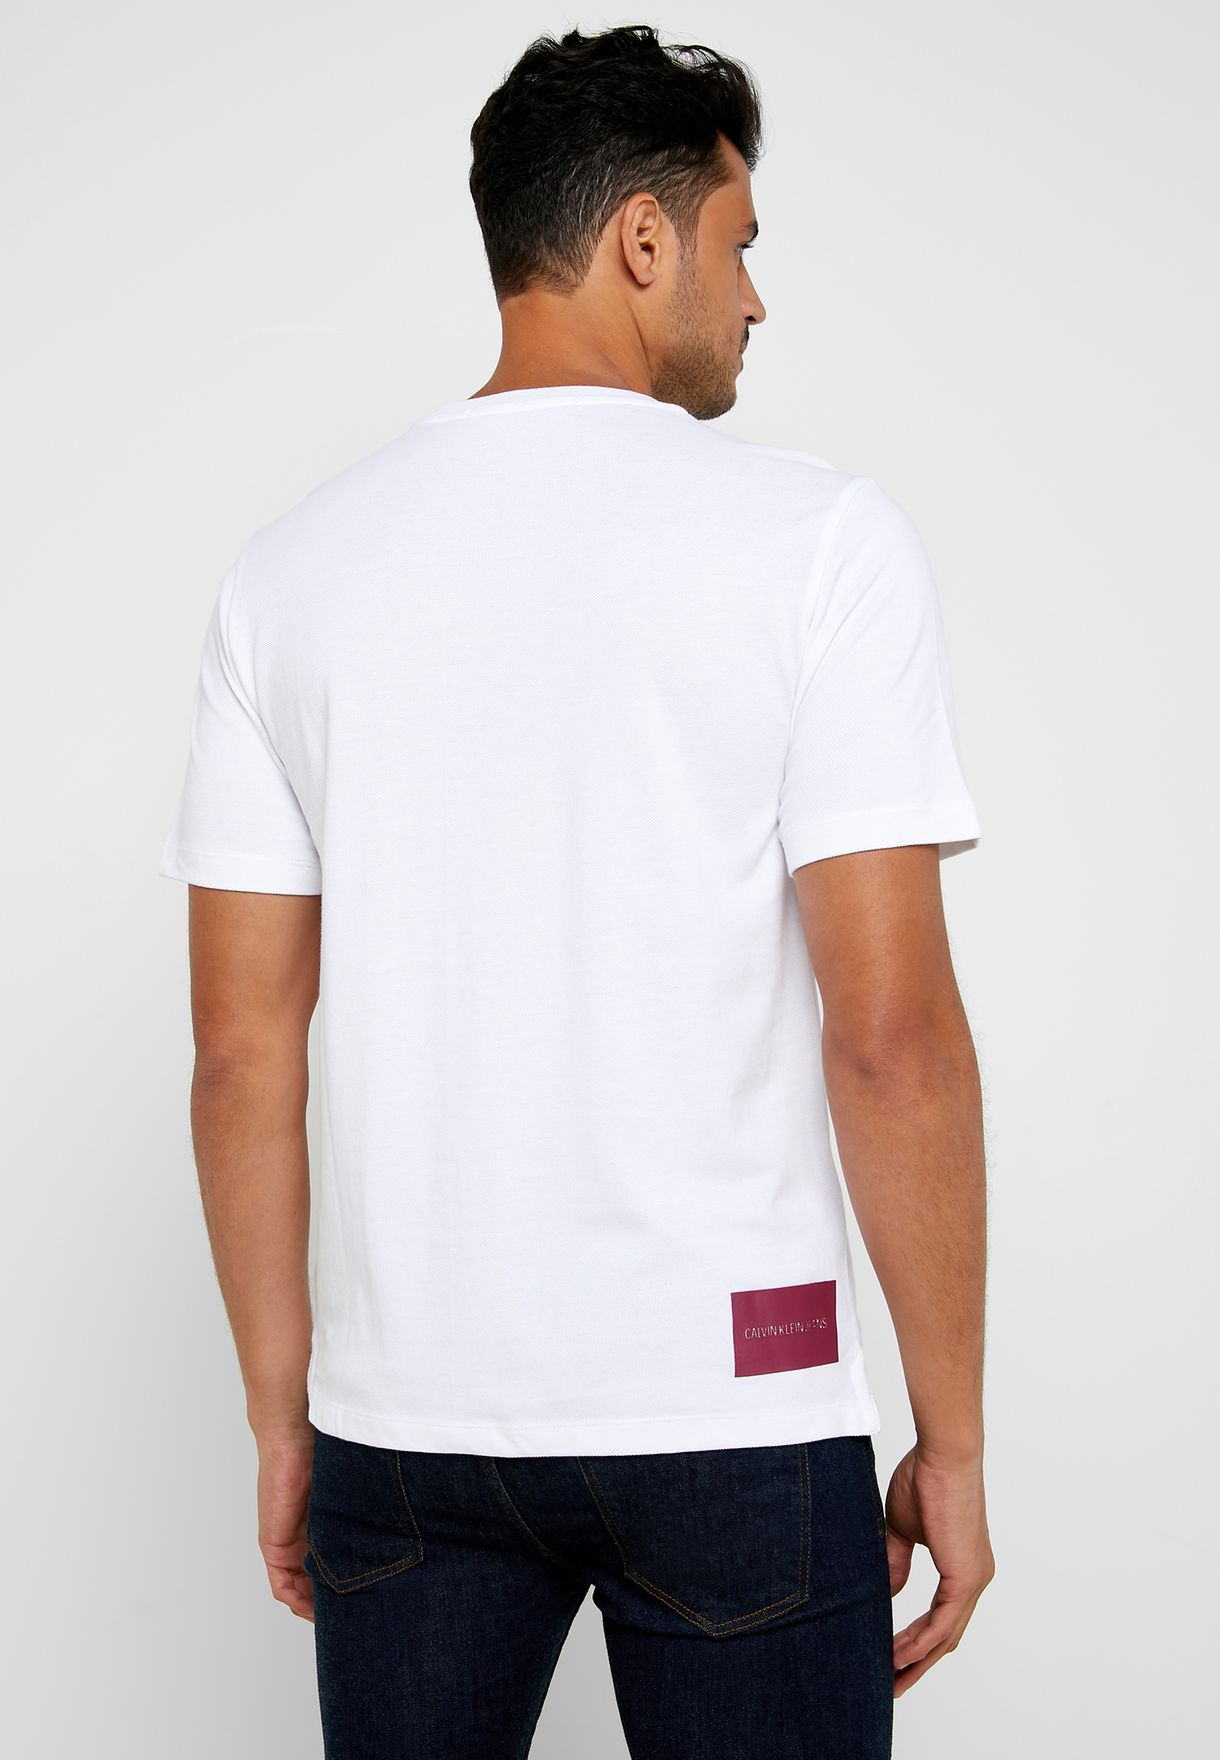 Instit Pique Pocket Crew Neck T-Shirt